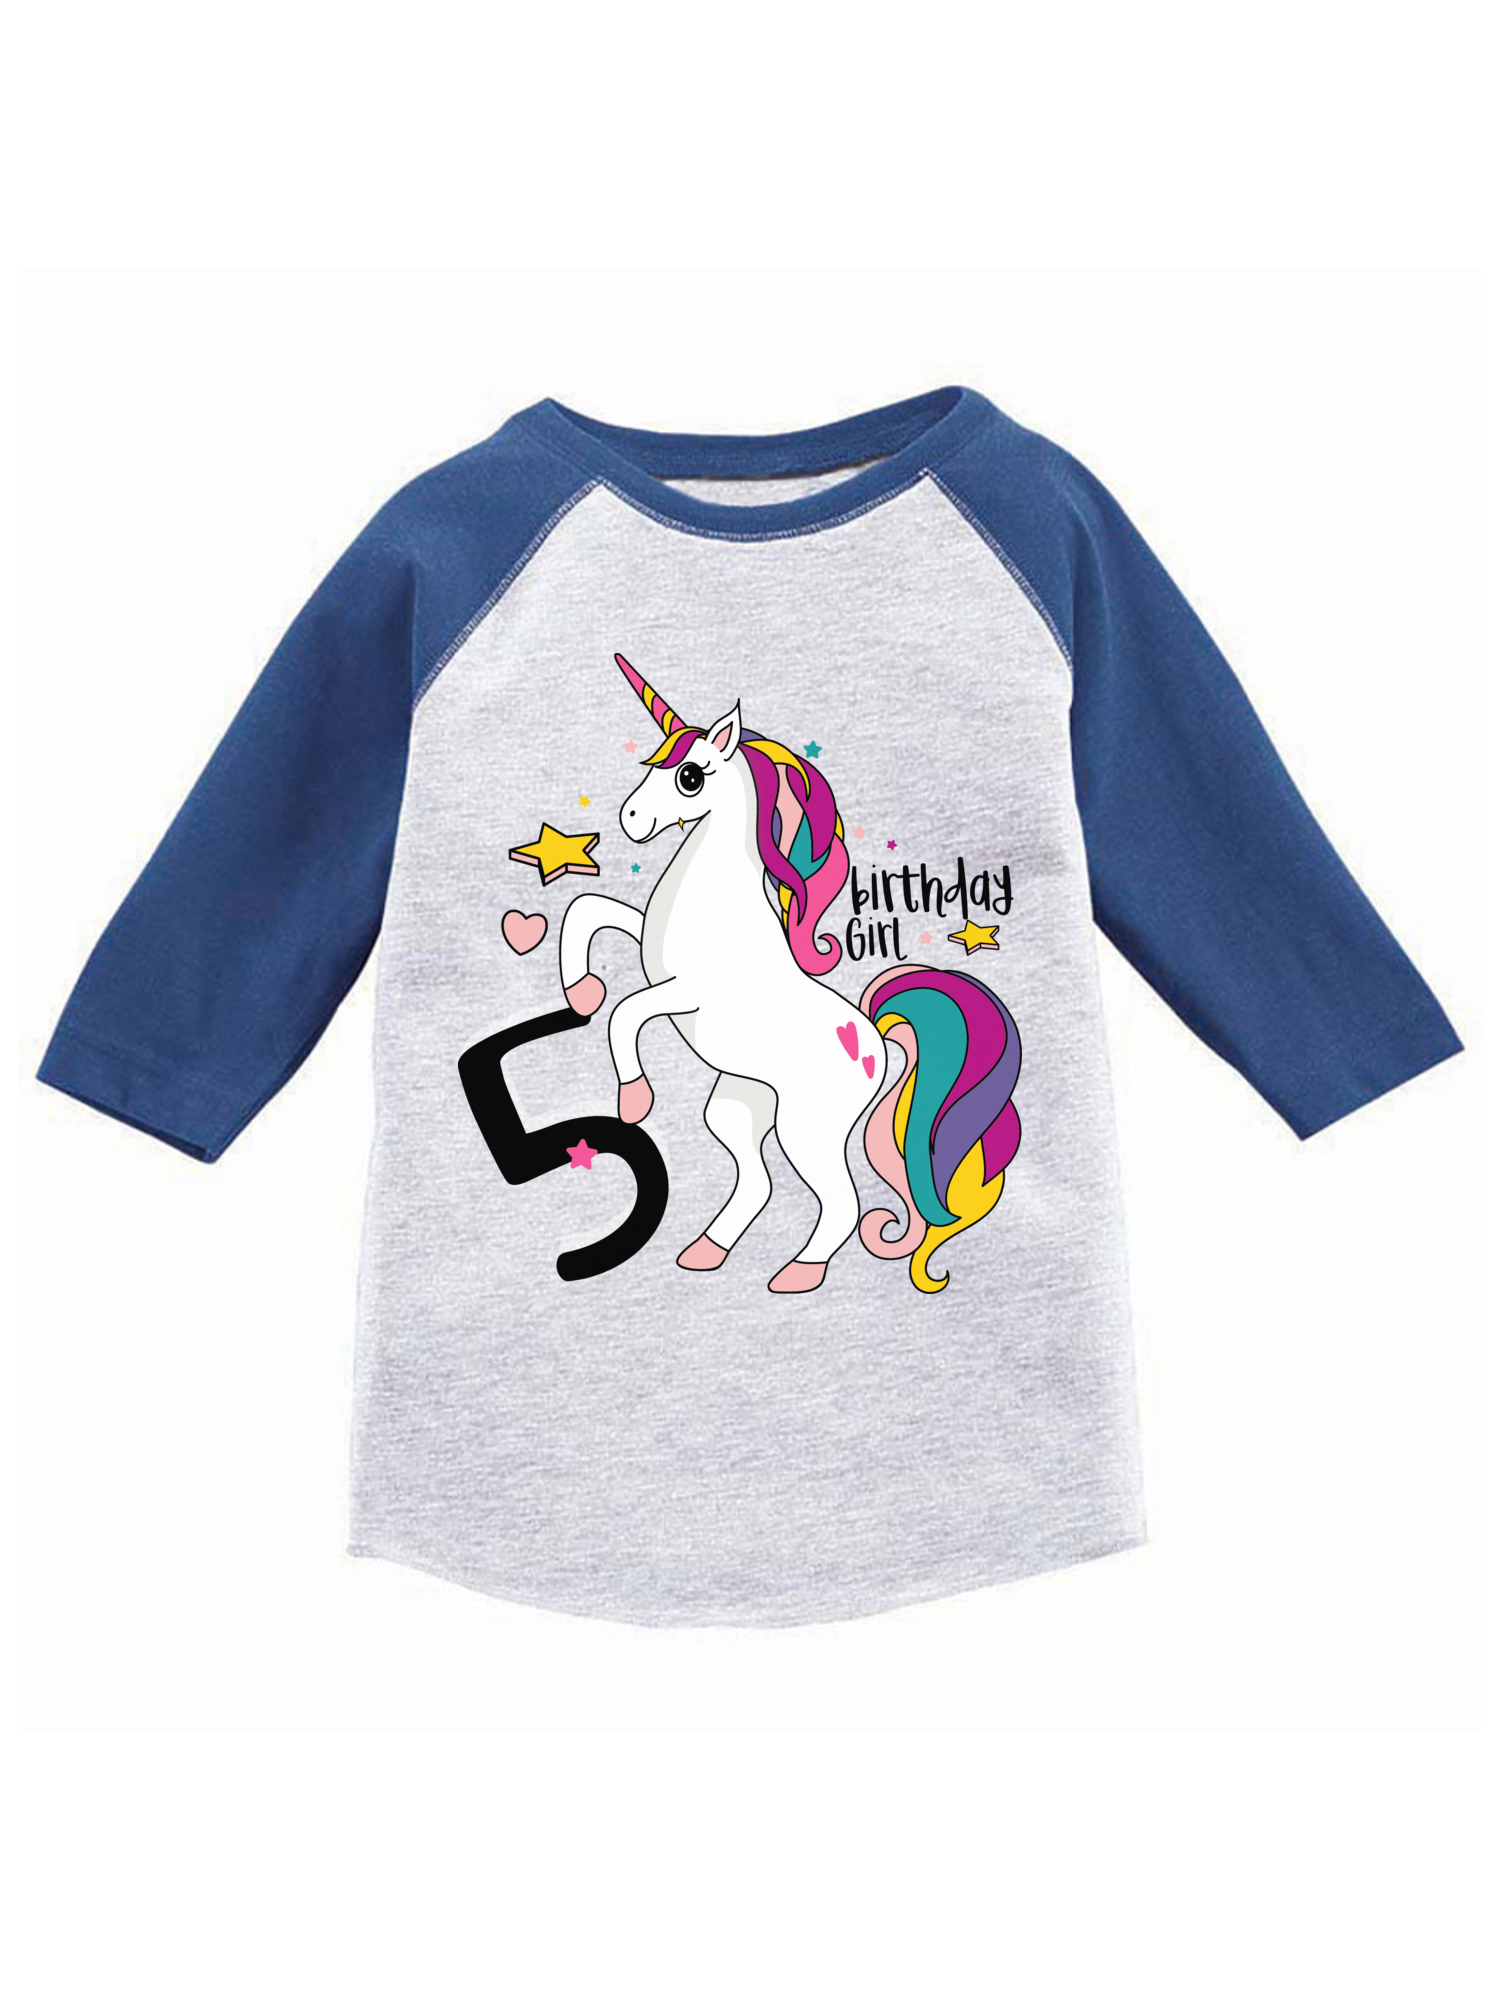 Awkward Styles Birthday Girl Toddler Raglan Unicorn Jersey Shirt 5th Gifts For 5 Year Old Cute Rainbow Outfit